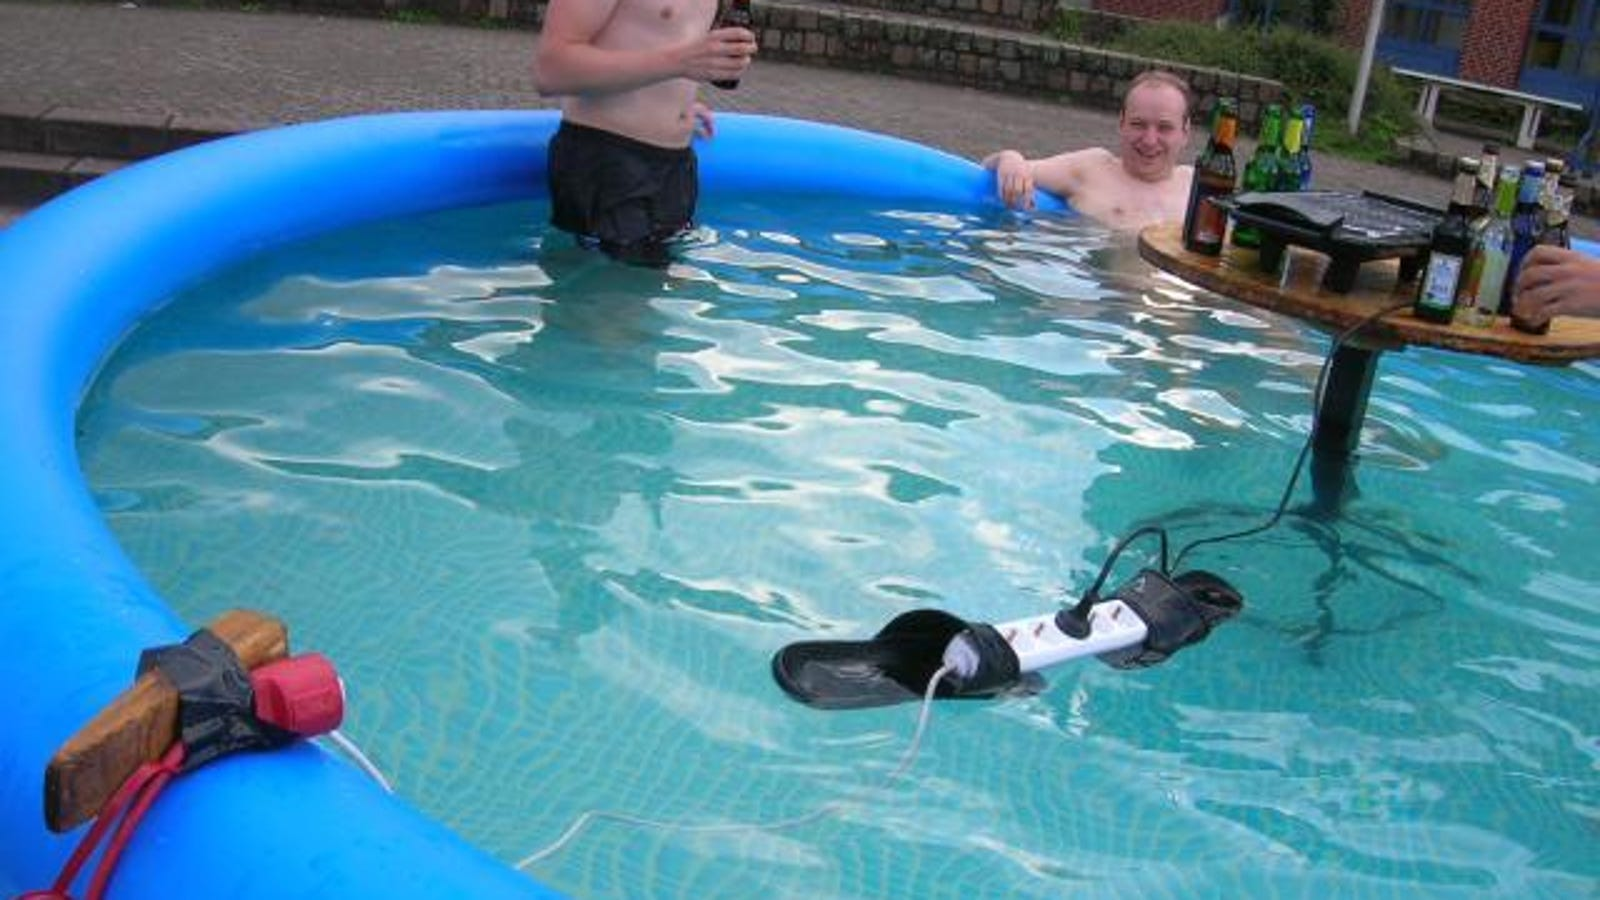 How To Win A Darwin Award Float Live Surge Protector In Pool On Of Flip Flops